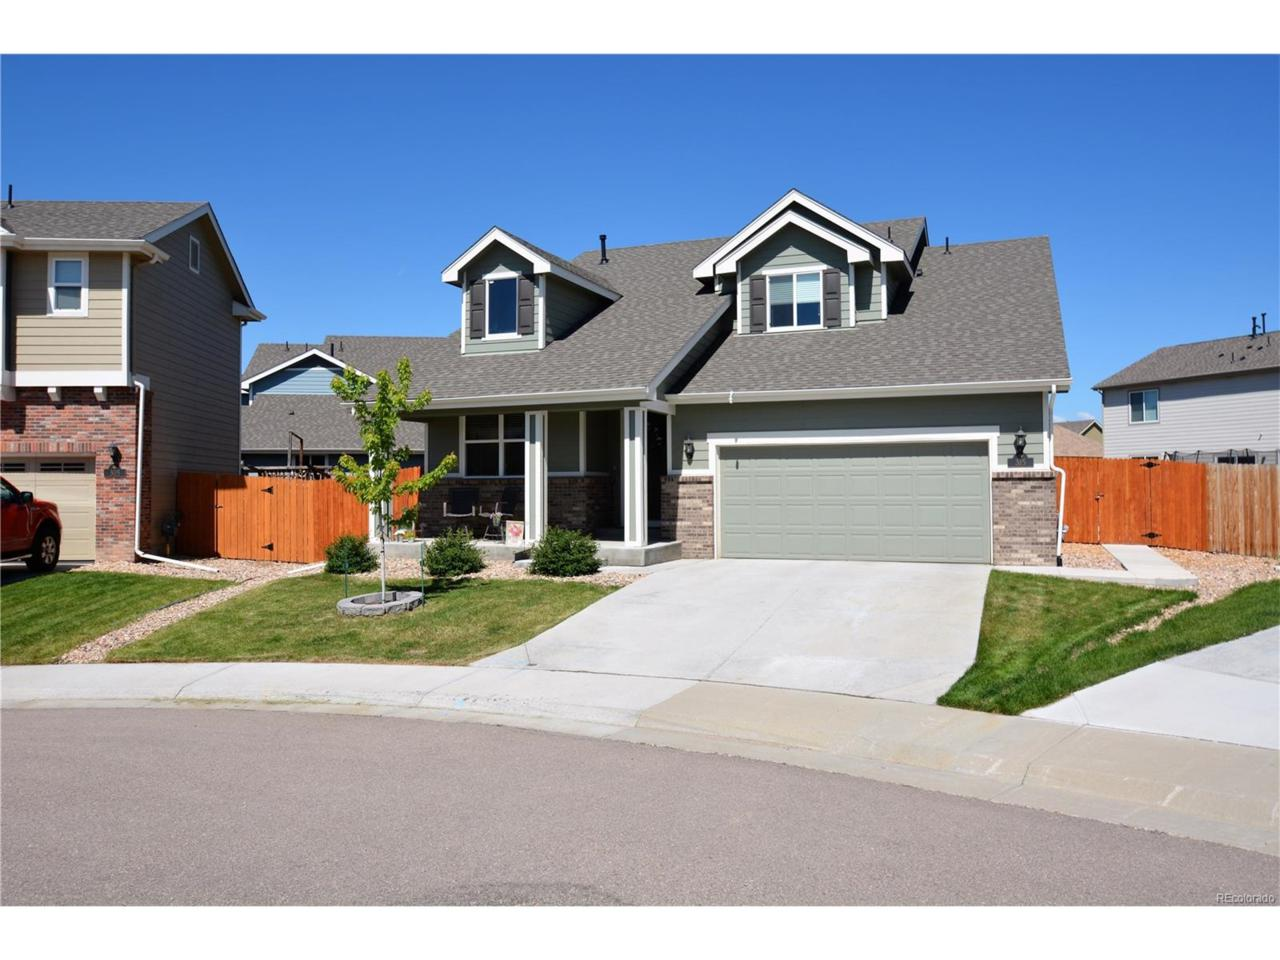 315 Baum Court, Dacono, CO 80514 (MLS #5896630) :: 8z Real Estate